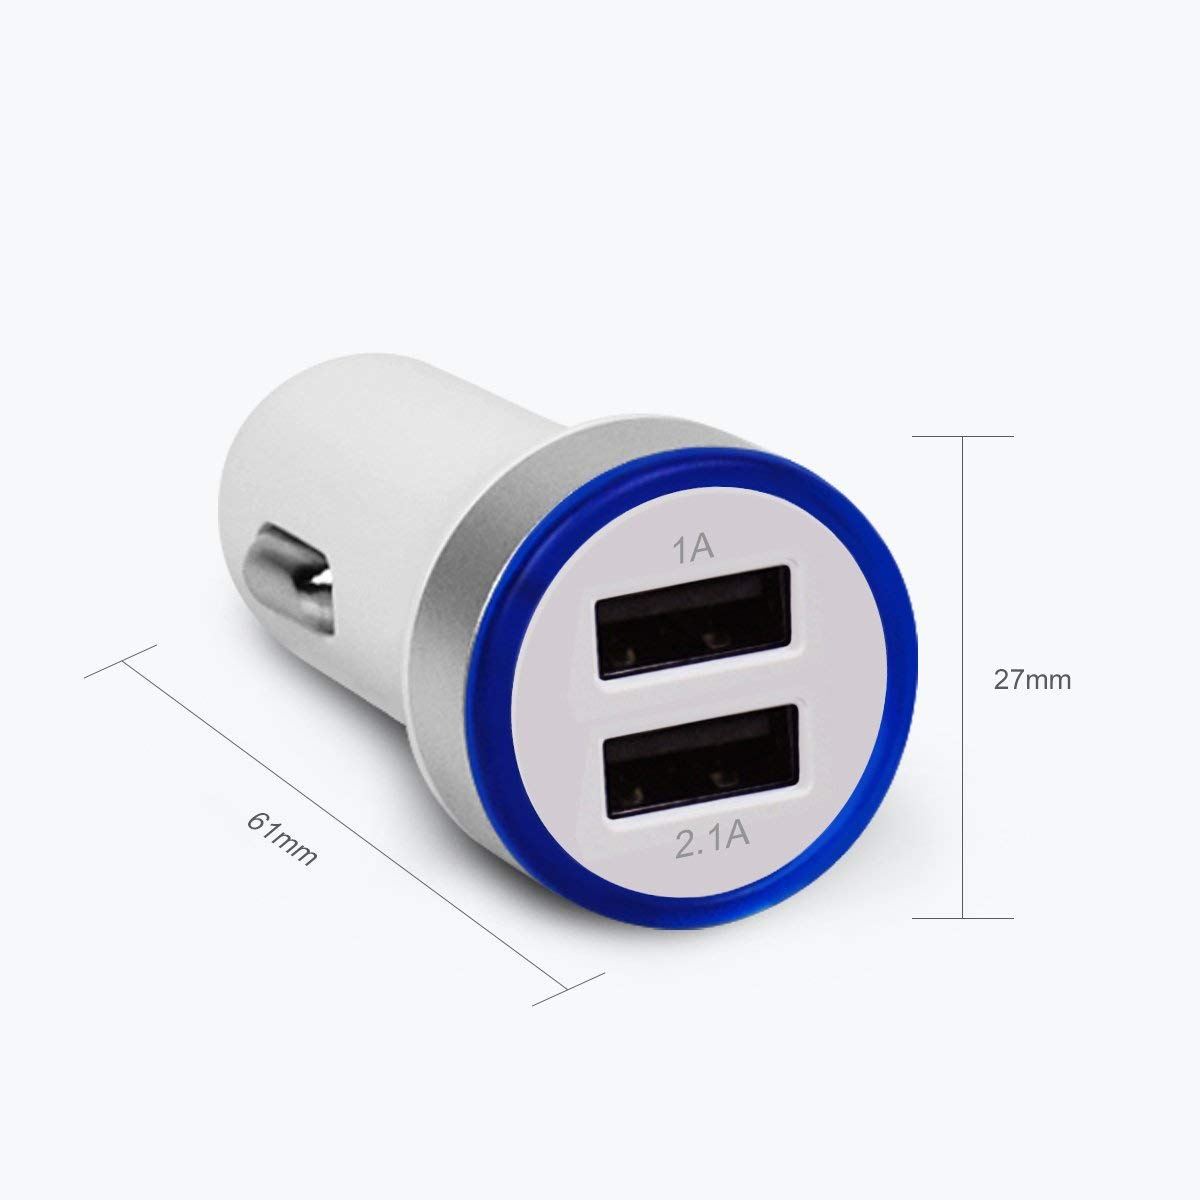 5ft Type-C Cable Google Pixel 3 2 XL AIOTSUN 3 in 1 Charger Kit Huawei P10 P9 P20 Pro Dual USB C Car Charger Adapter,Wall Power Charger Compatible with Samsung Galaxy S10 S9 S8 A3 A5 Note 8 9